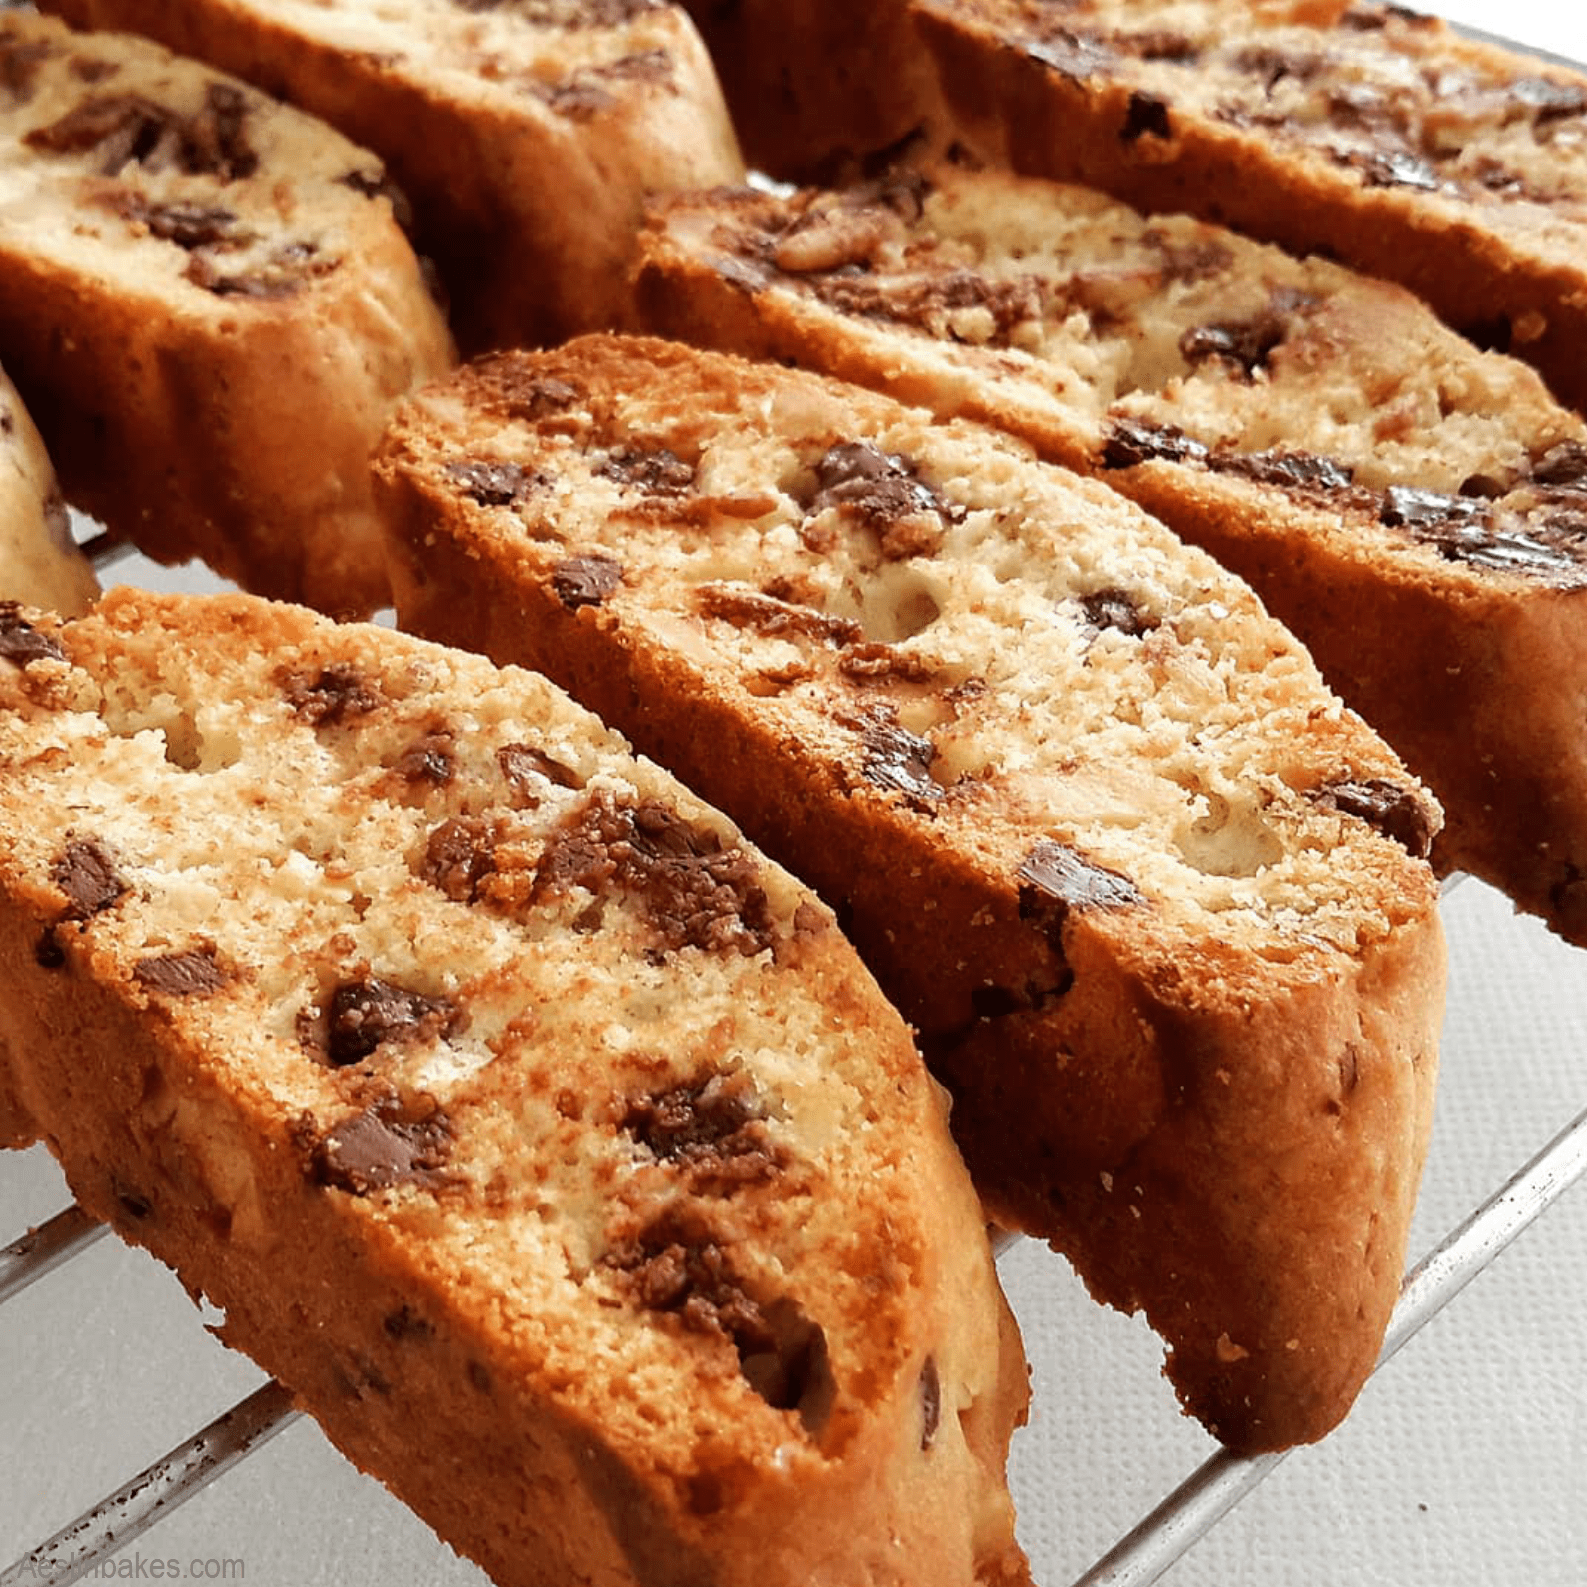 Chocolate Chip Walnut Biscotti on a cooling rack